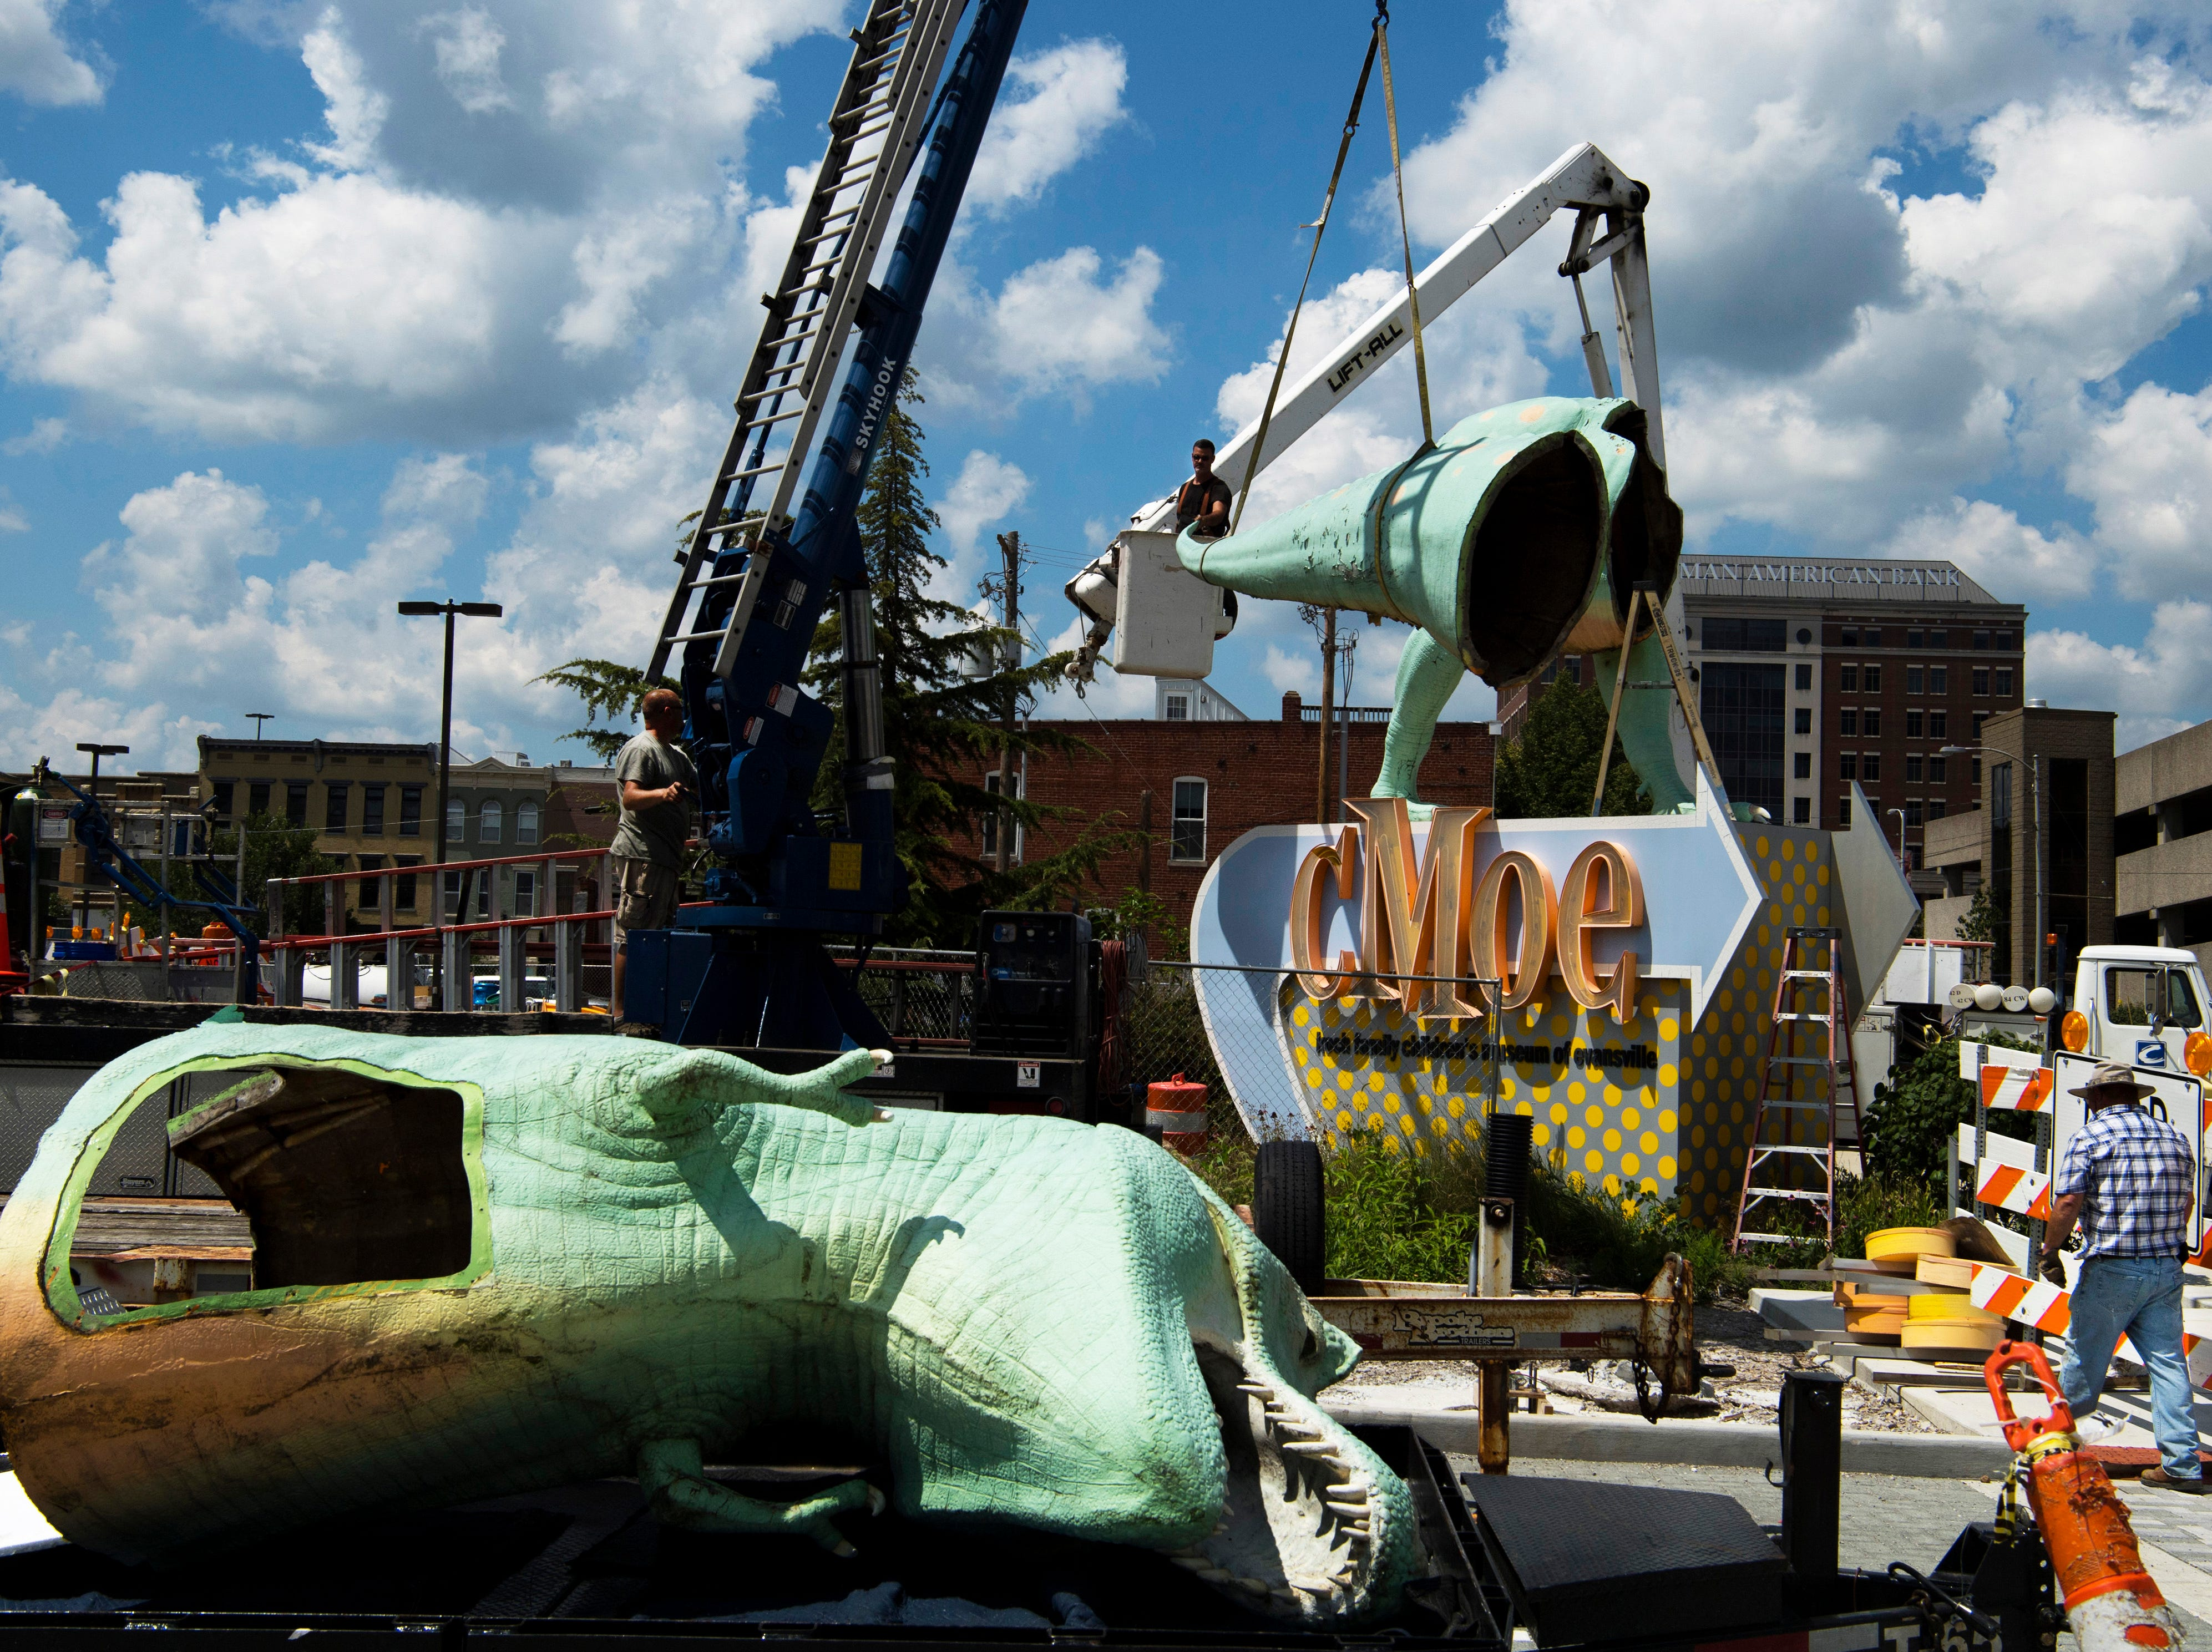 Millie, a Tyrannosaurus Rex dinosaur – and the Koch Family Children's Museum of Evansville's most recognizable face – is disassembled by Bart Meyer, top center, and the team from Custom Sign of Newburgh, Ind., Wednesday morning. Millie has perched atop her pedestal at the corner of Locust and Fifth streets for more than a decade and is getting a new paint job. It is unknown where the green T-Rex will reside after her facelift, but cMoe assures us Millie's new home will be easily seen in the Downtown Evansville area.